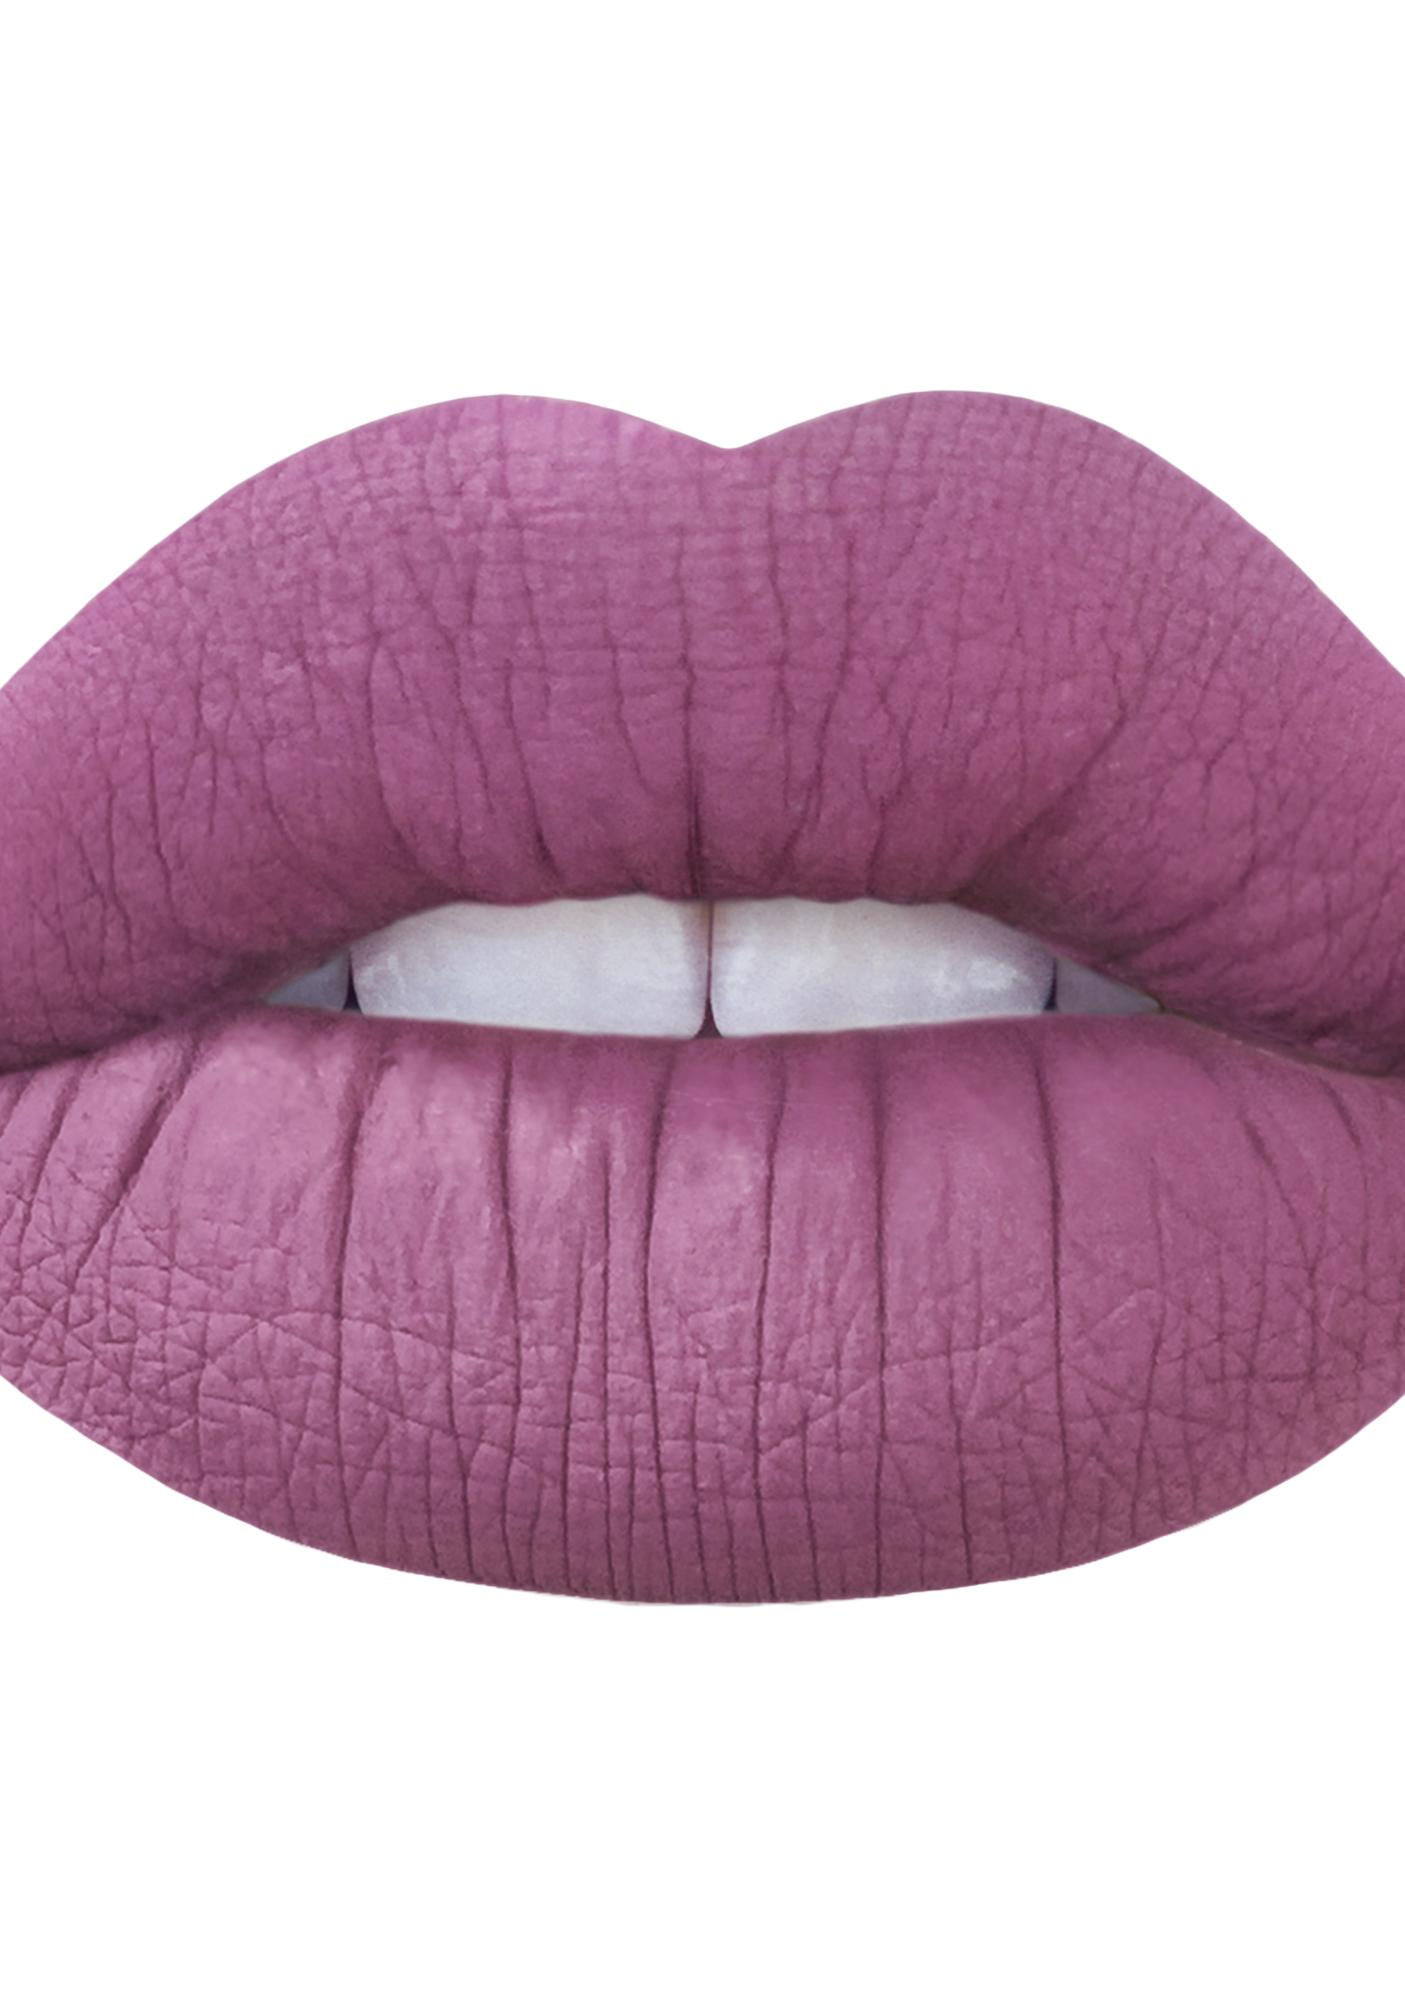 Lime Crime Faded Velvetine Liquid Lipstick